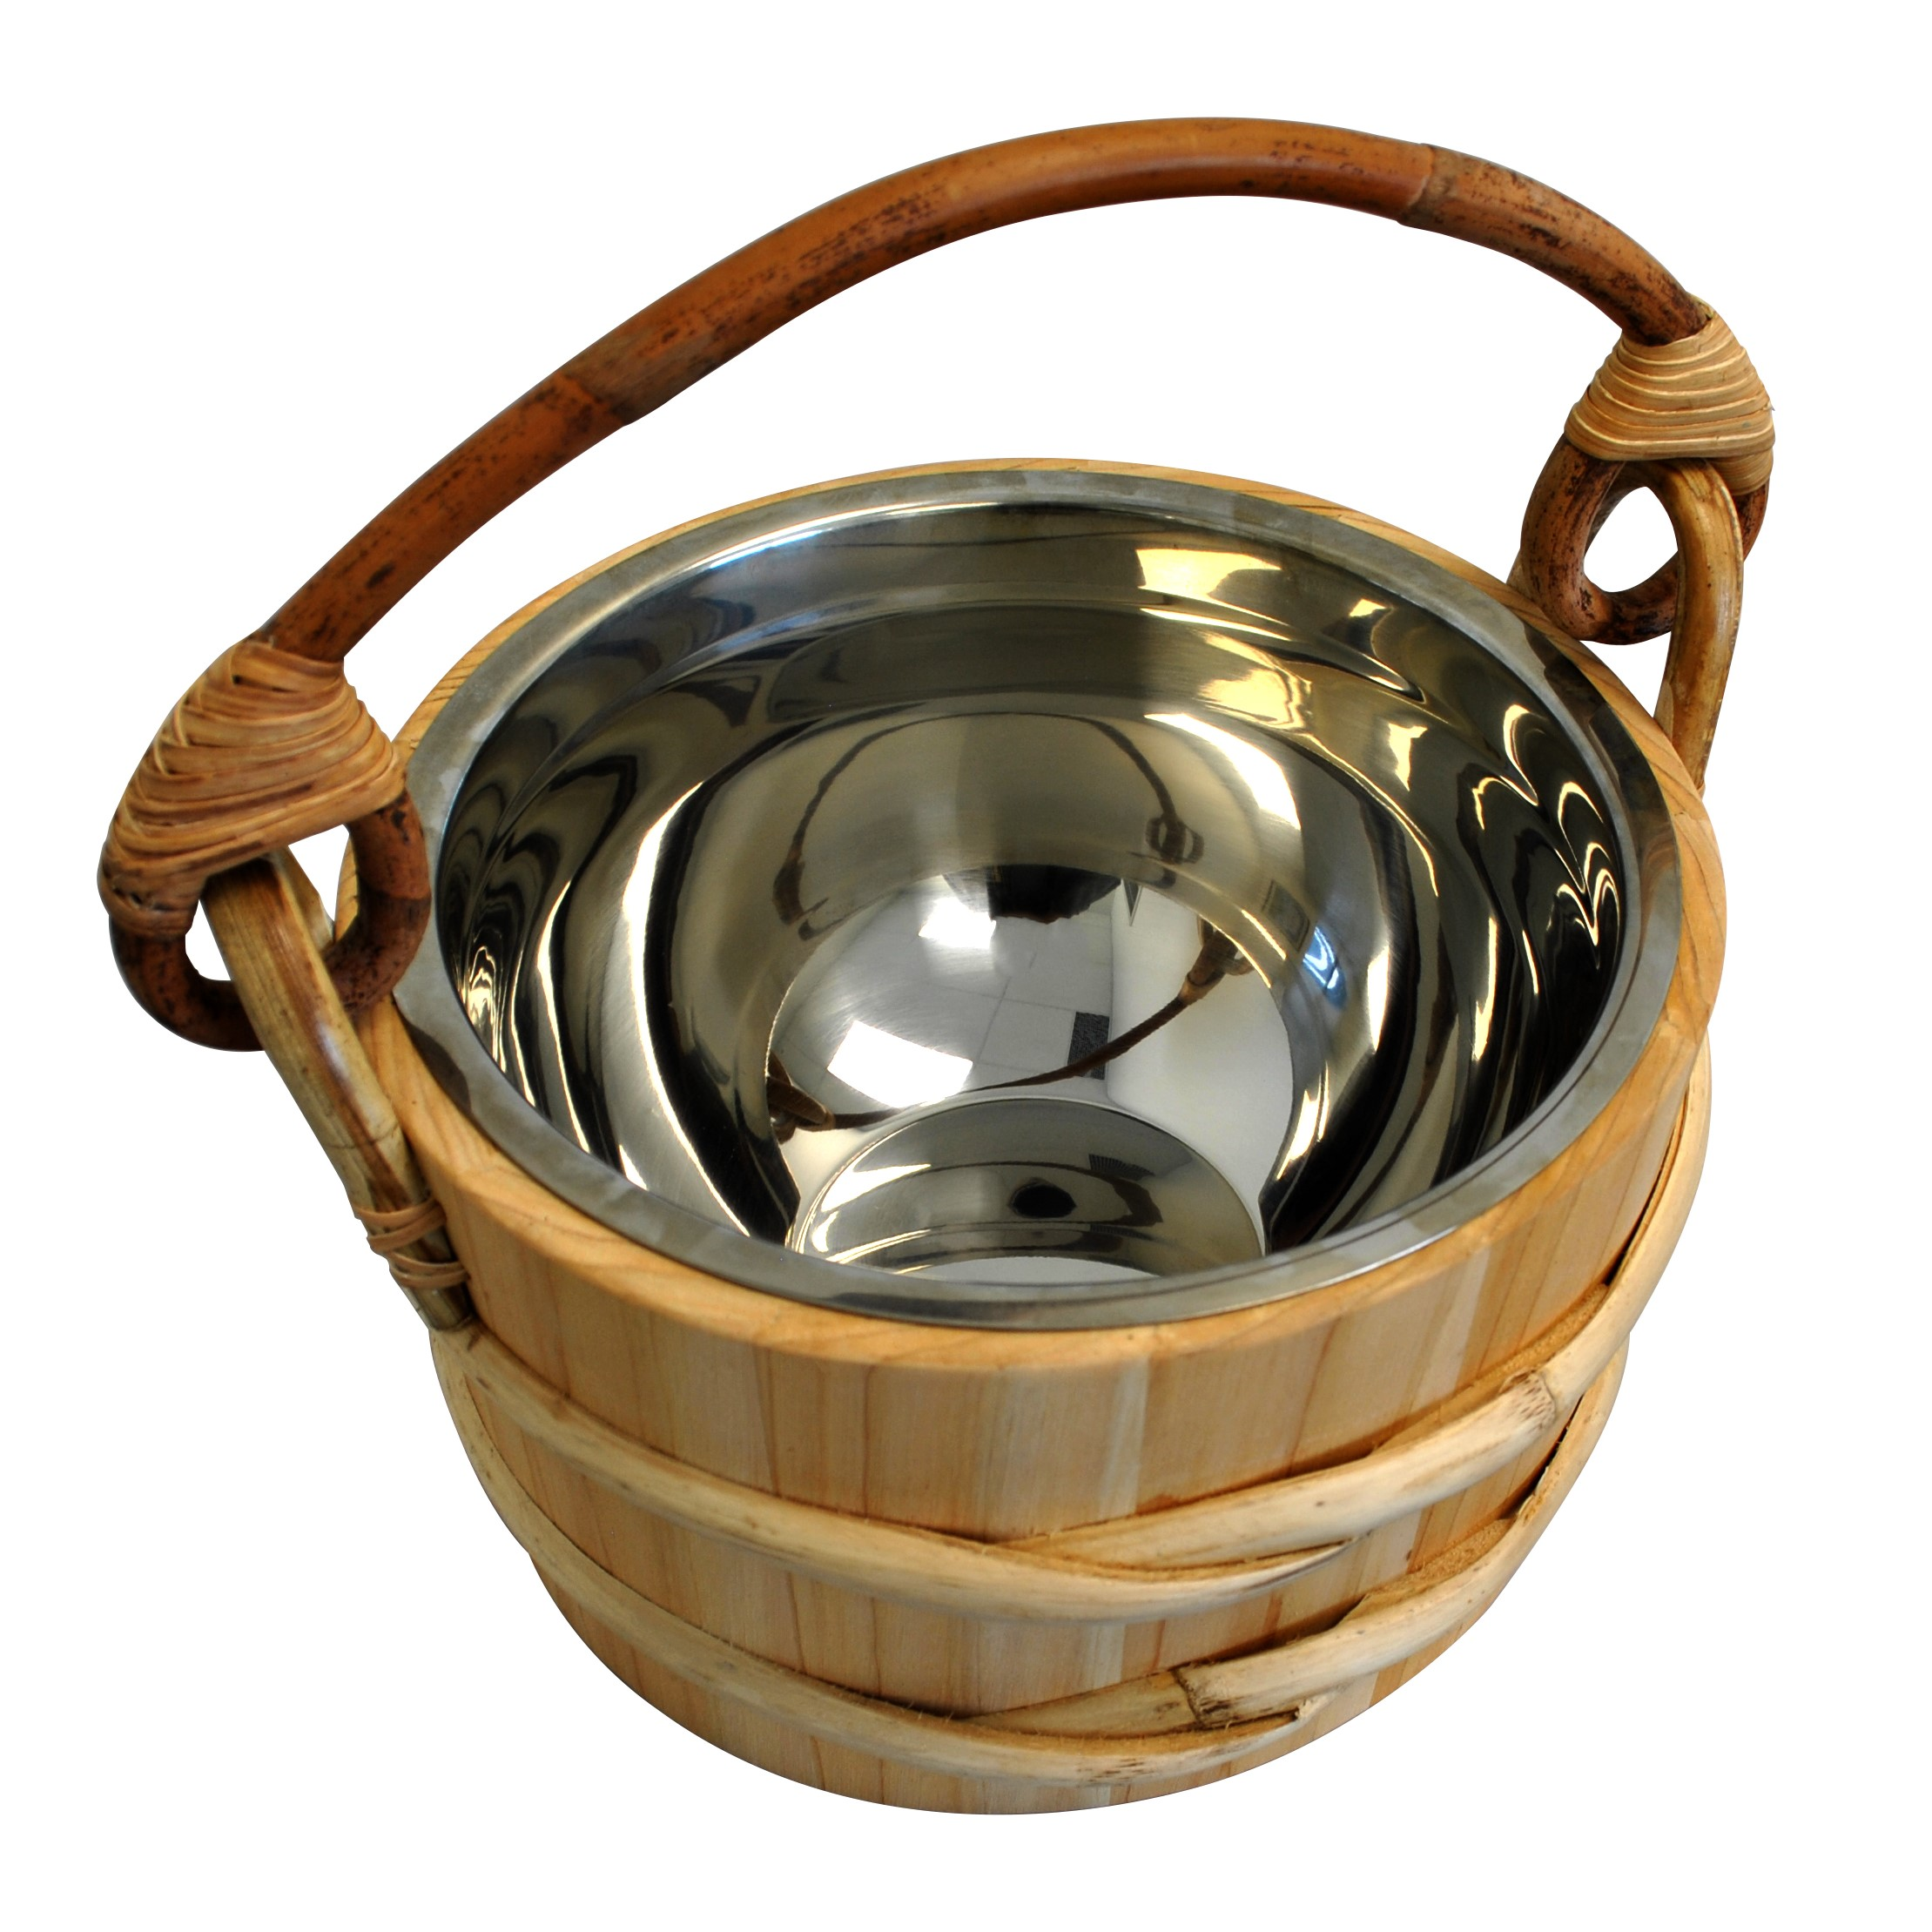 Cedar Sauna Bucket - Stainless Steel Insert - 5L - Click Image to Close